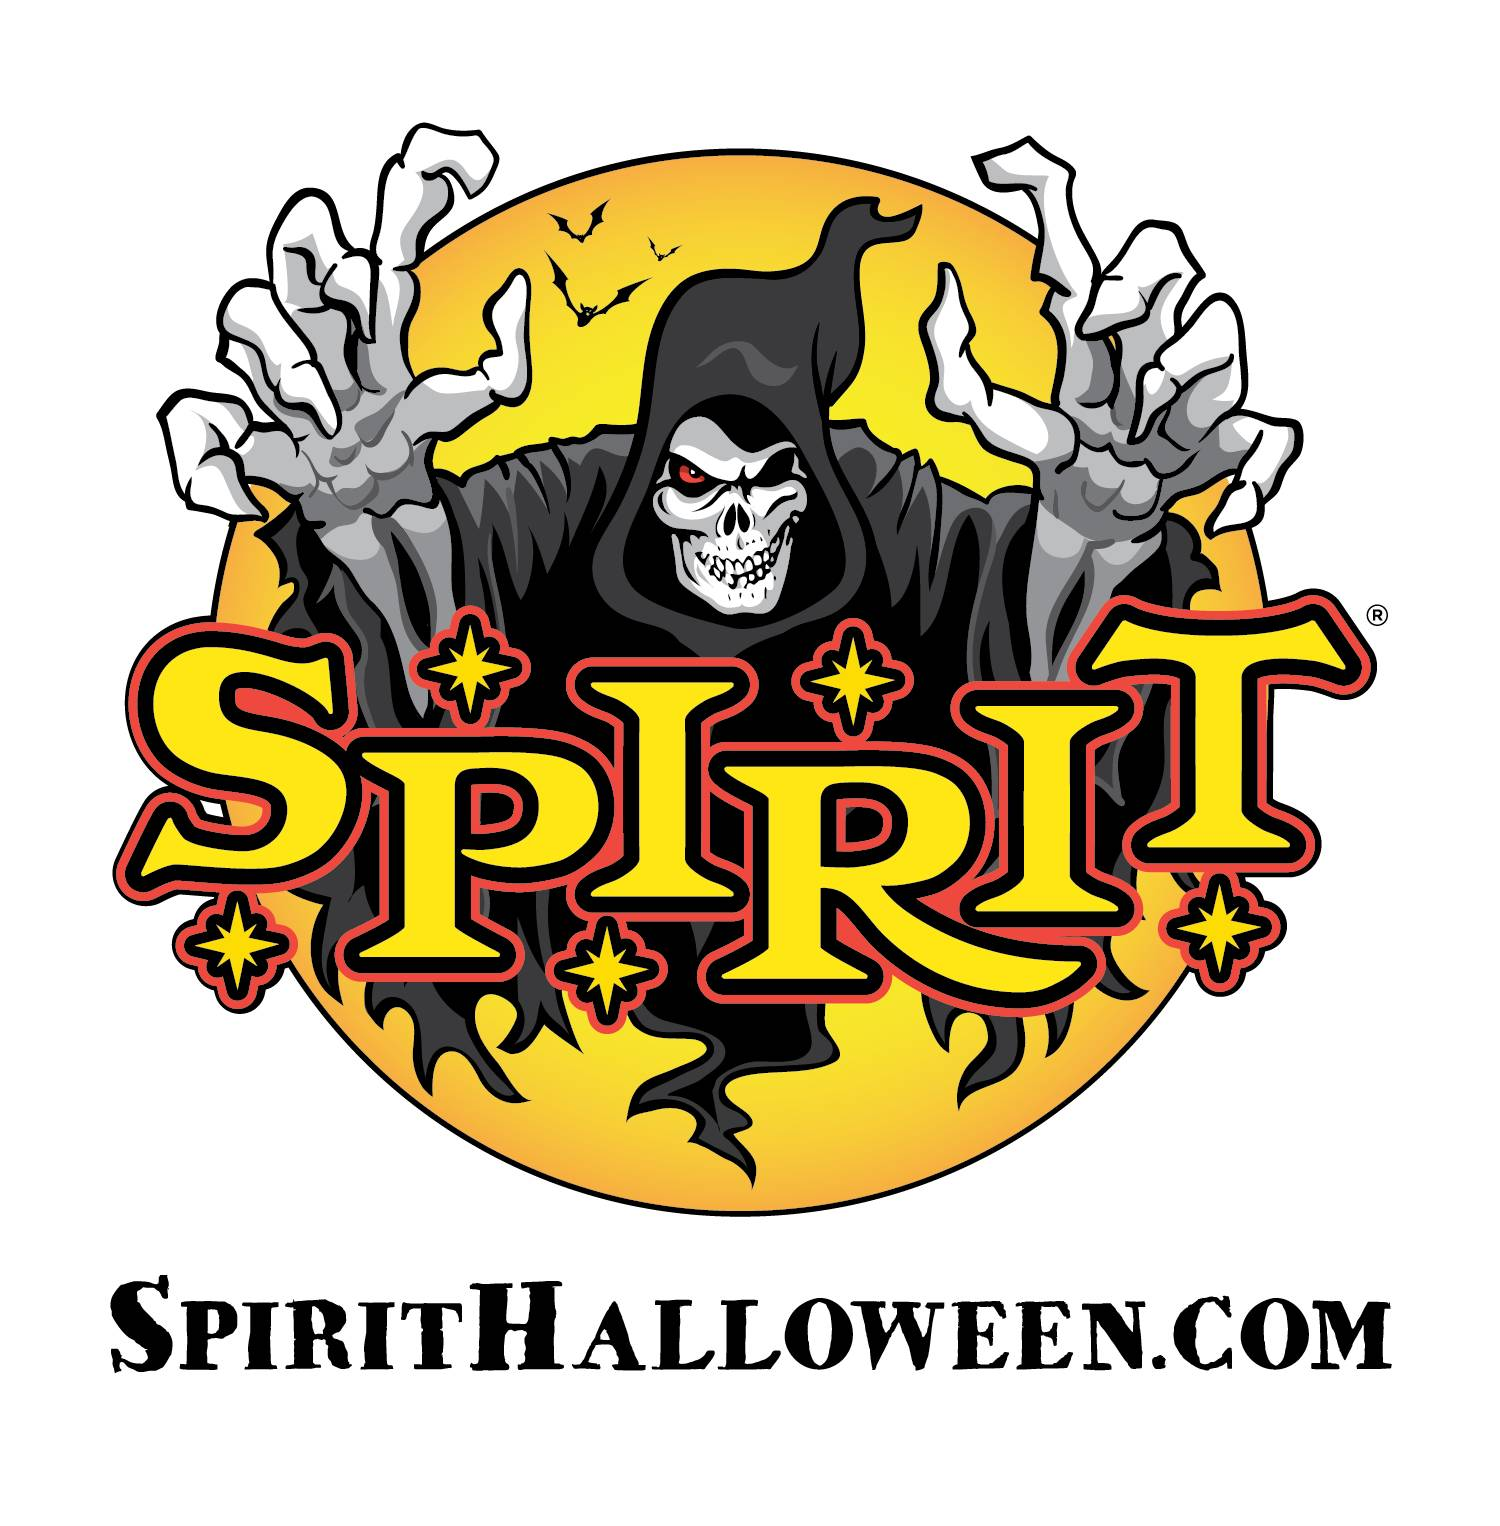 company information spirit halloween logo - Spirit Halloween 50 Off Coupon